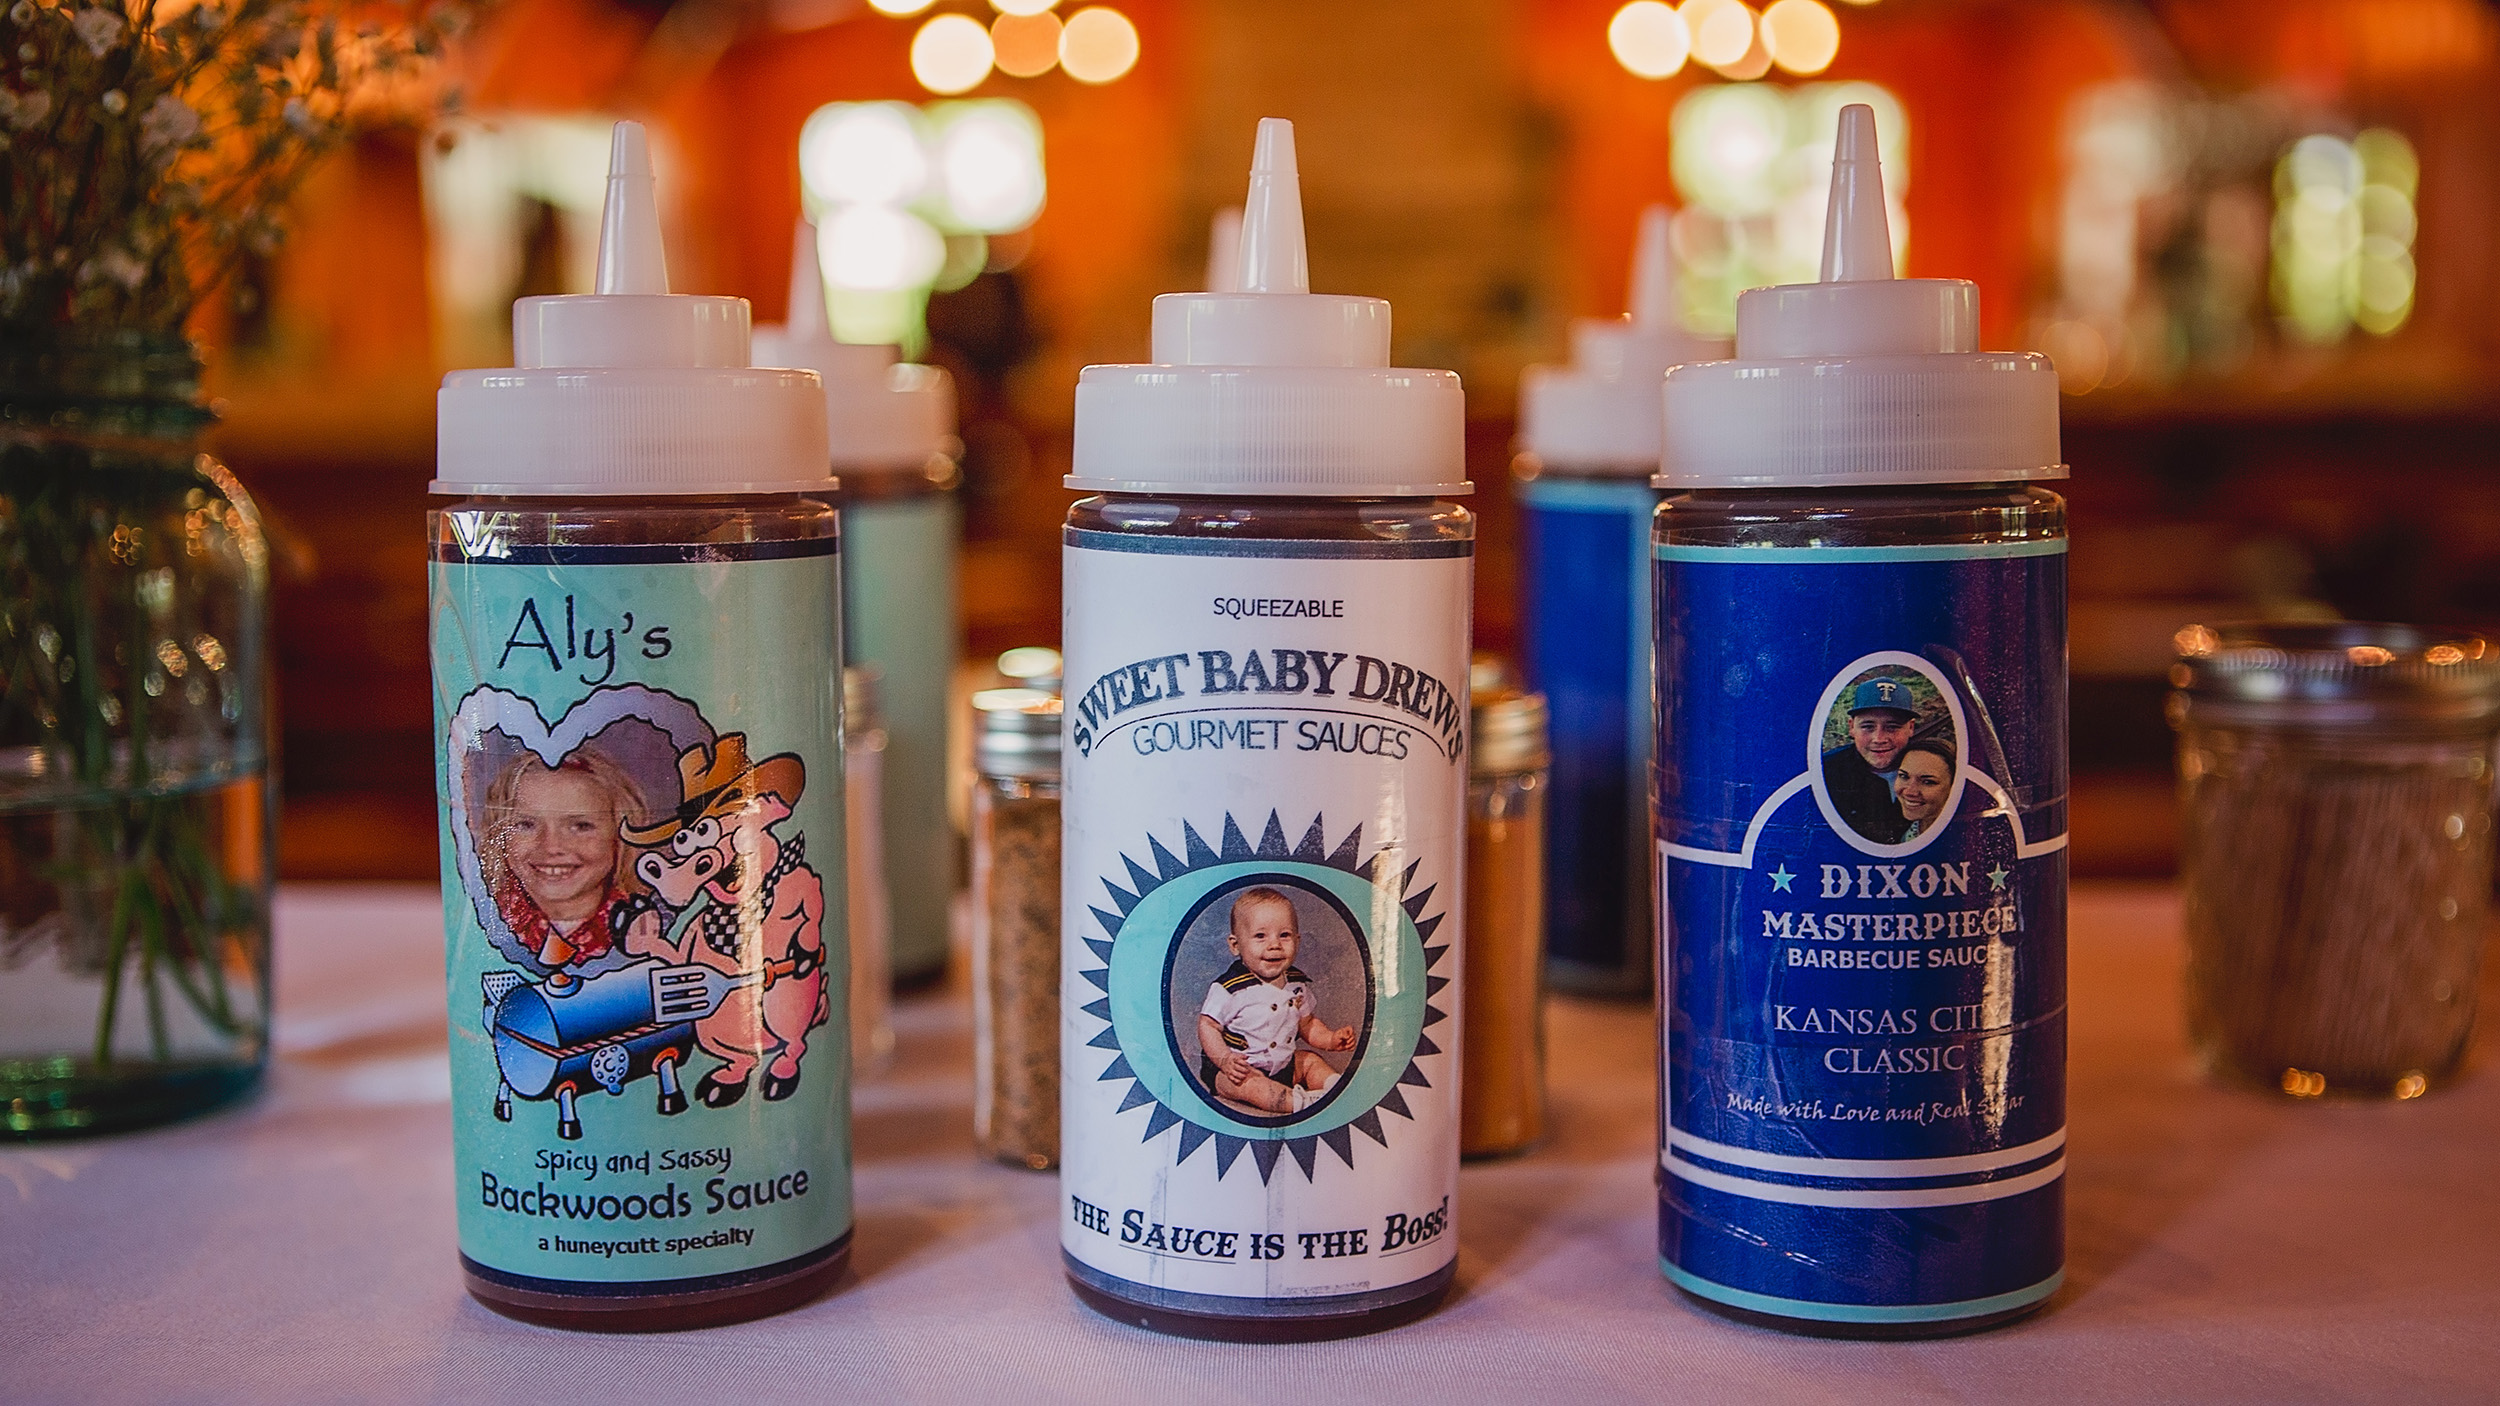 The battle of the BBQ sauces gets personal at this BBQ wedding reception.